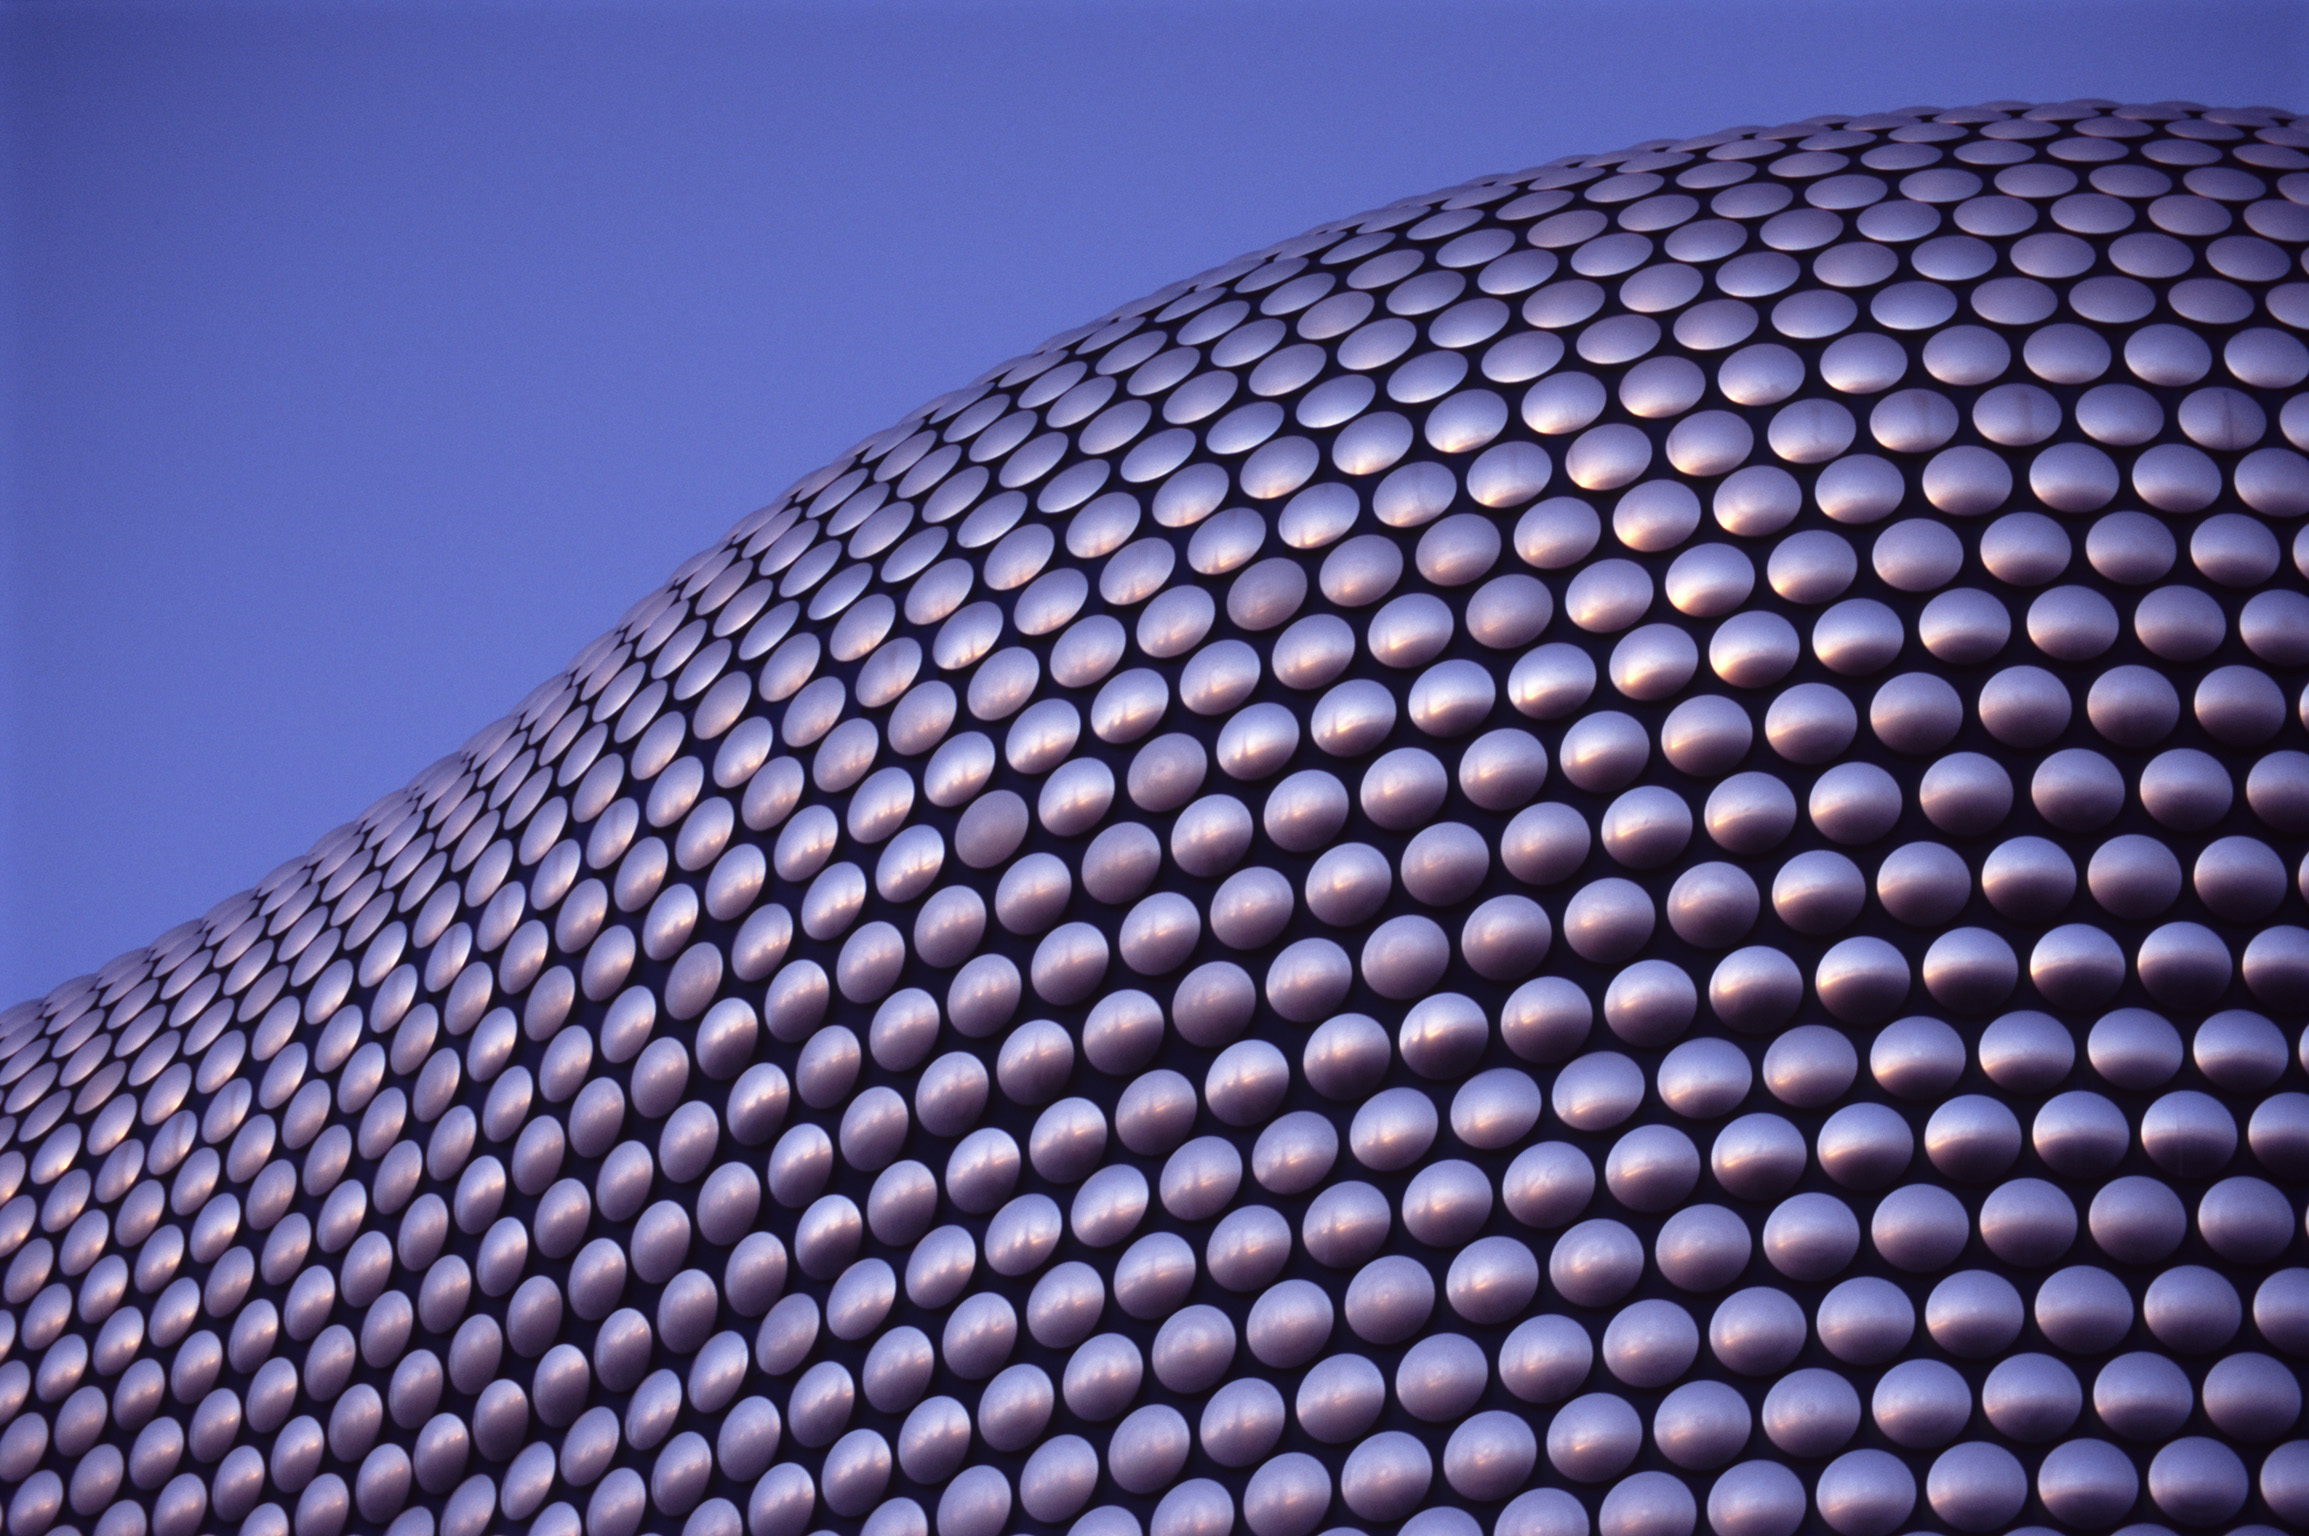 Close up on the cladding of the Selfridges Building at Birmingham Bullring Shopping Center on a Sunny Day with Blue Gray Sky Background.